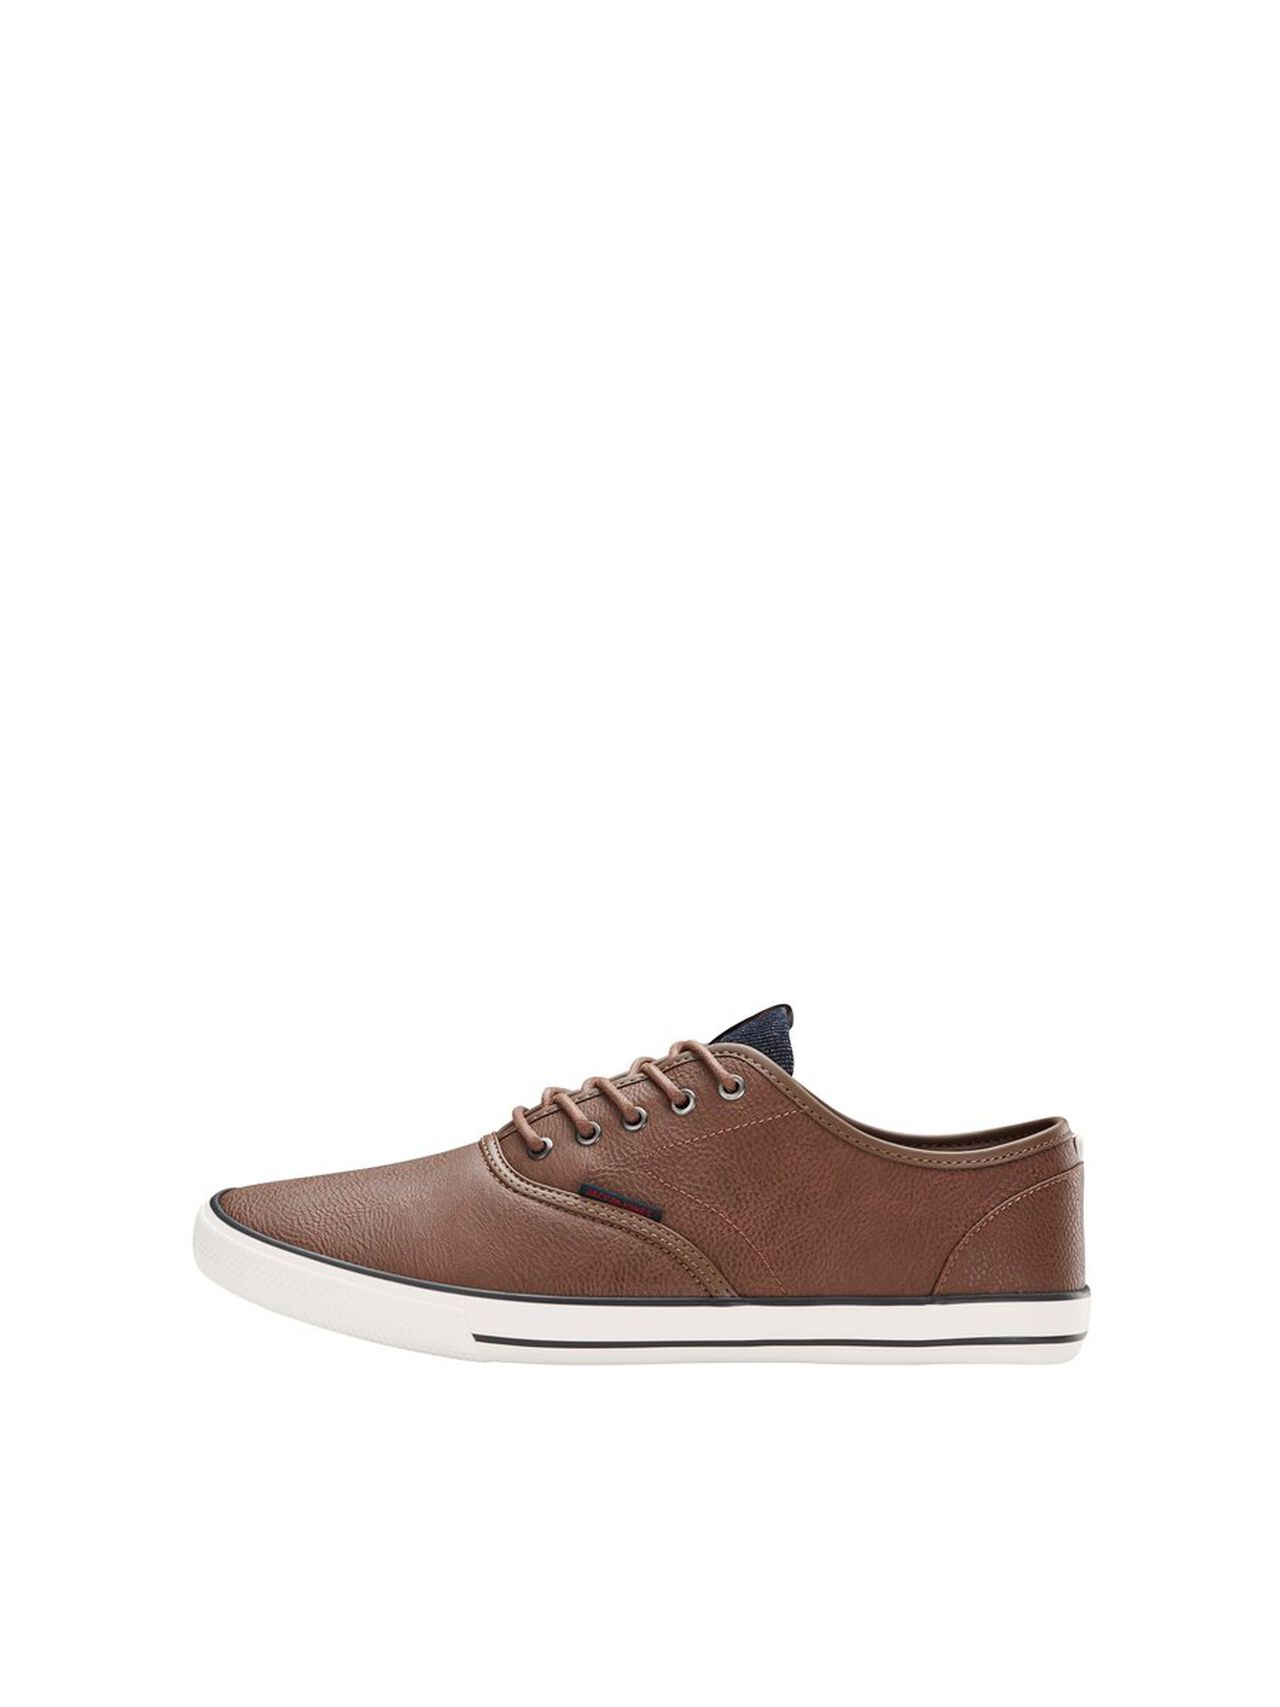 JACK & JONES Everyday Sneakers Men brown